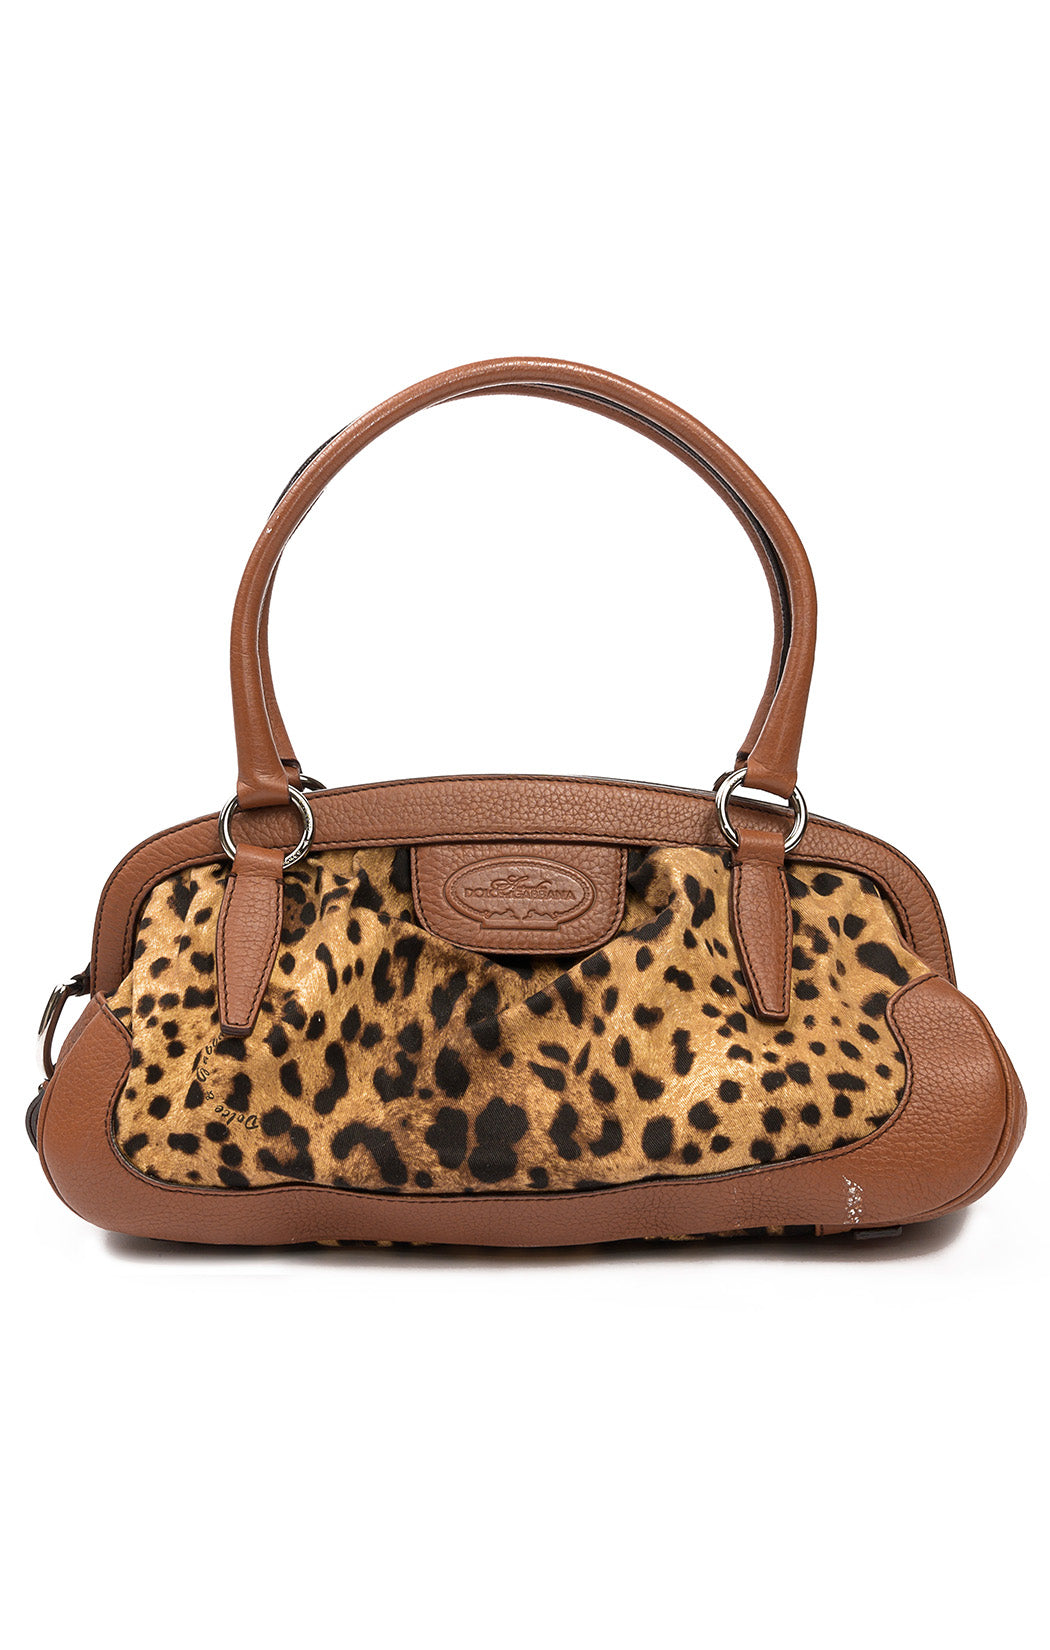 "Front view of DOLCE & GABBANA Purse Size: 16"" L x 8"" H x 6"" D"